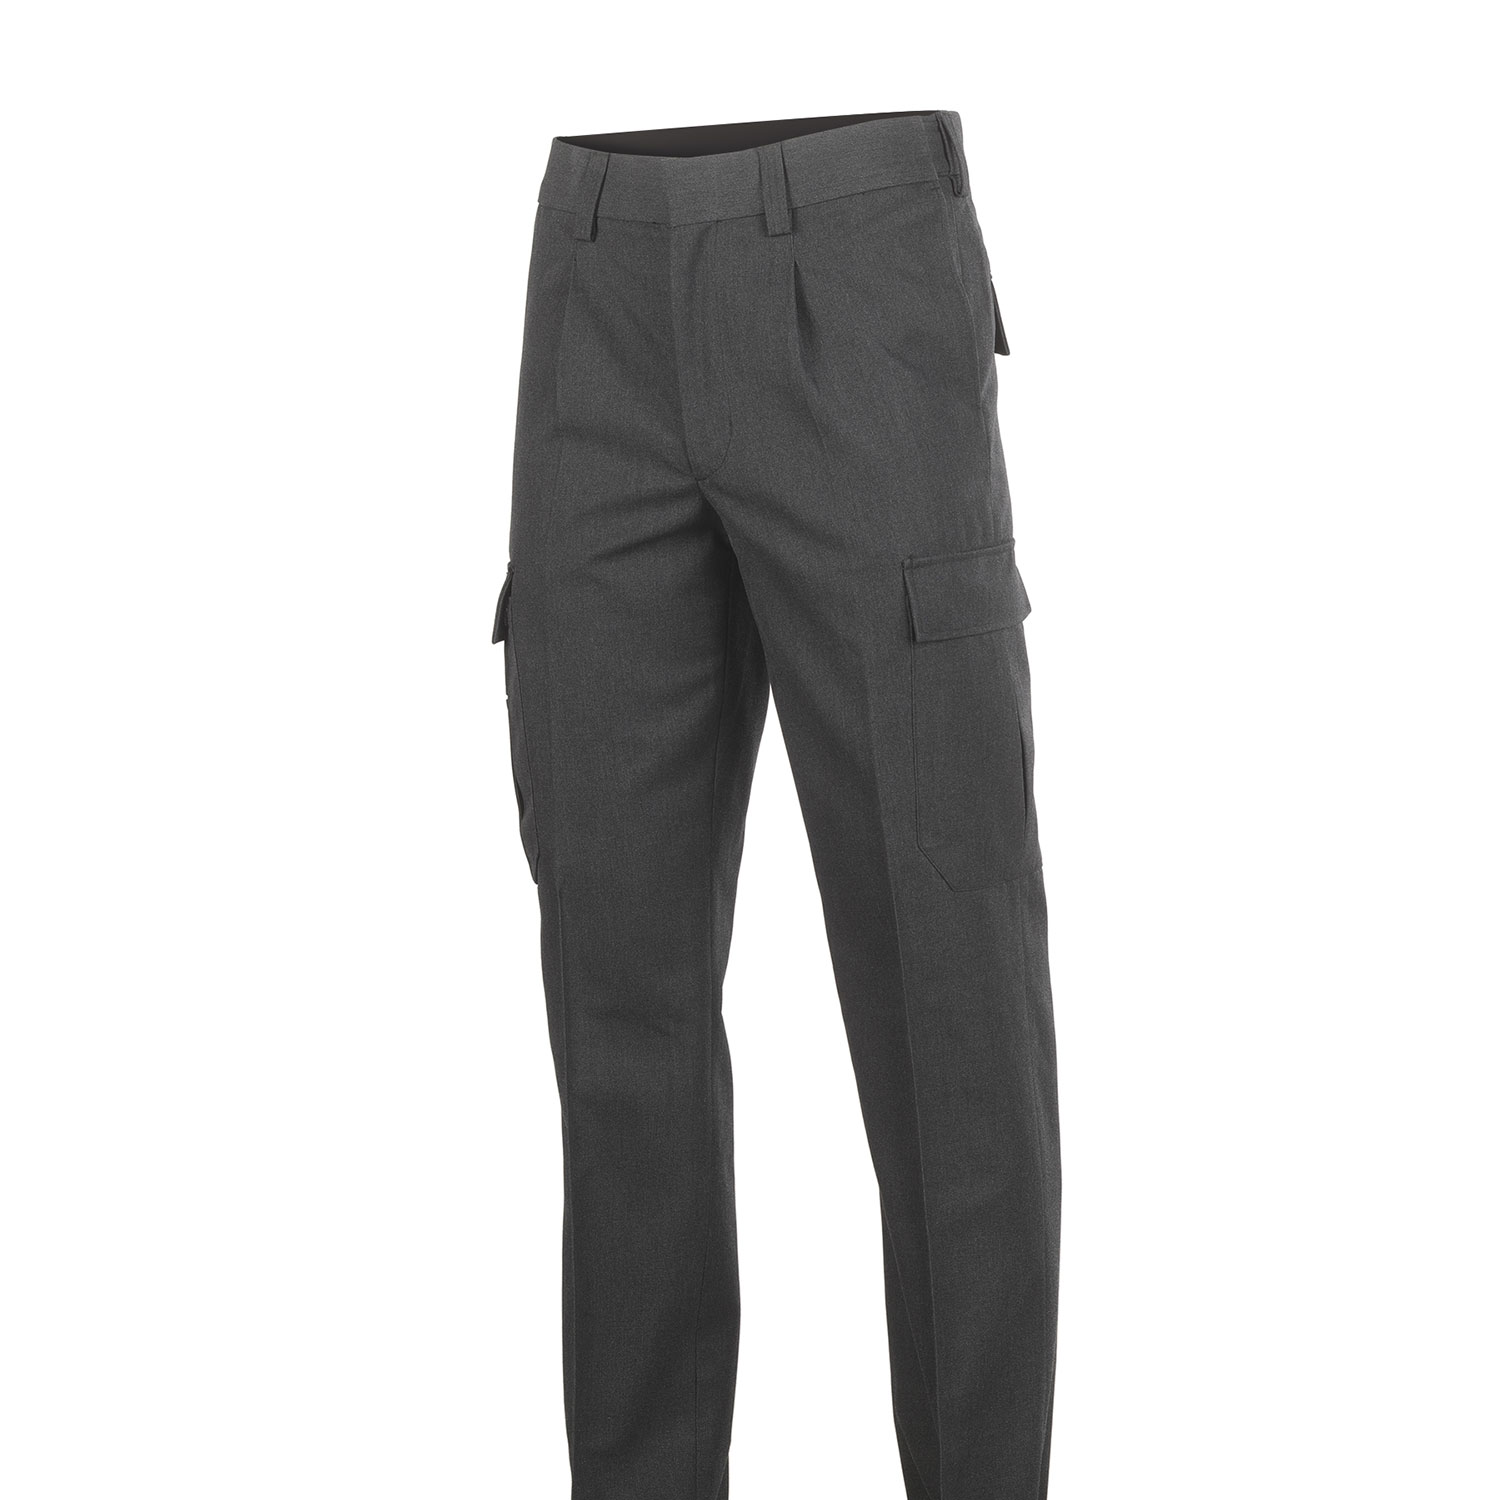 FBOP WORK CLASS B CARGO MENS TROUSERS